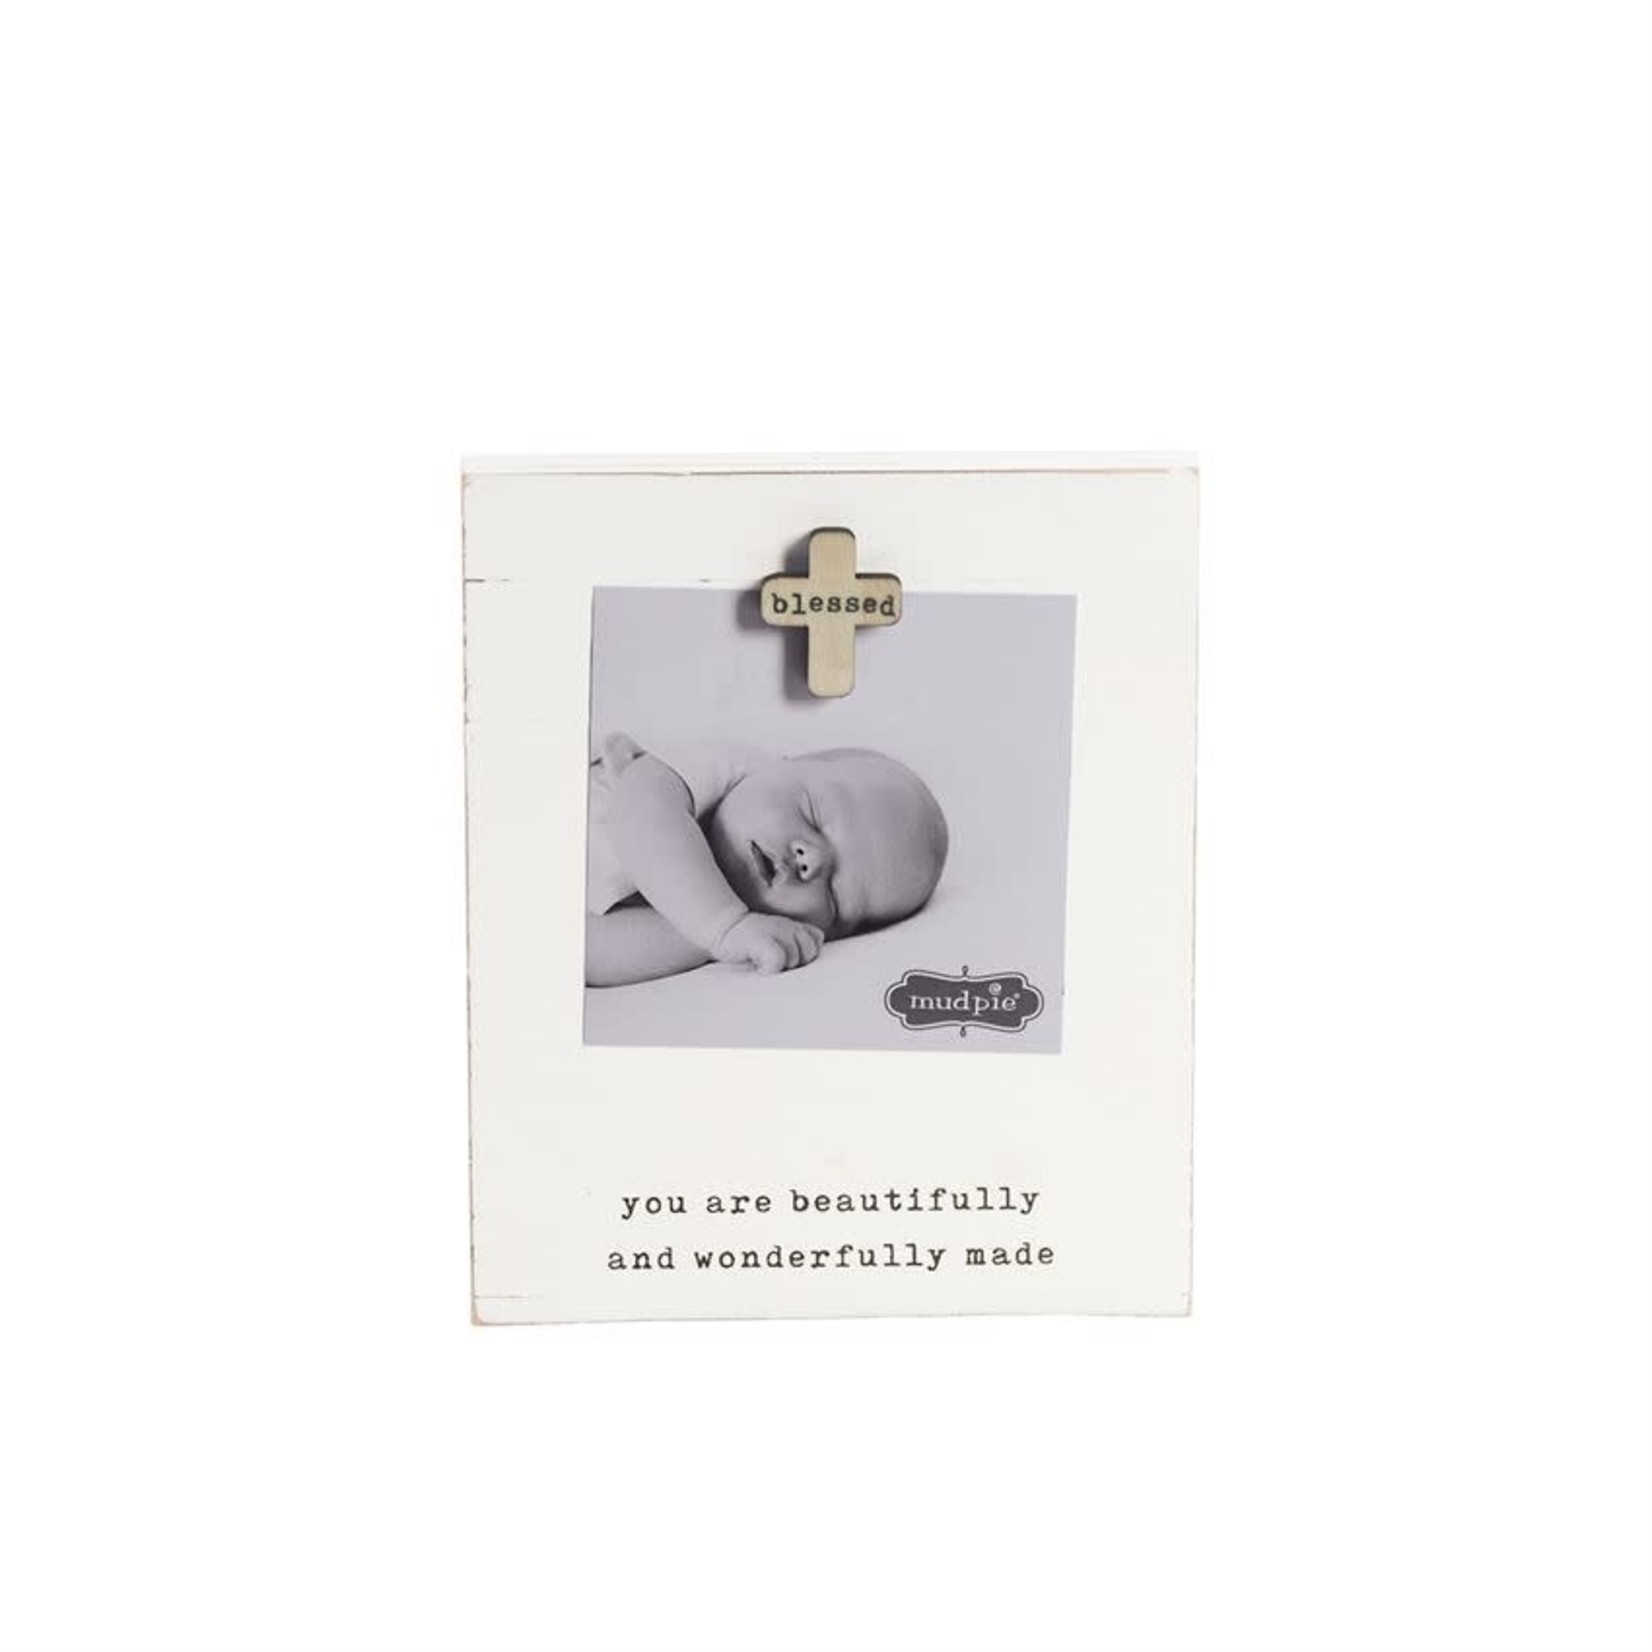 MudPie Blessed Baby Magnet Wood Frame